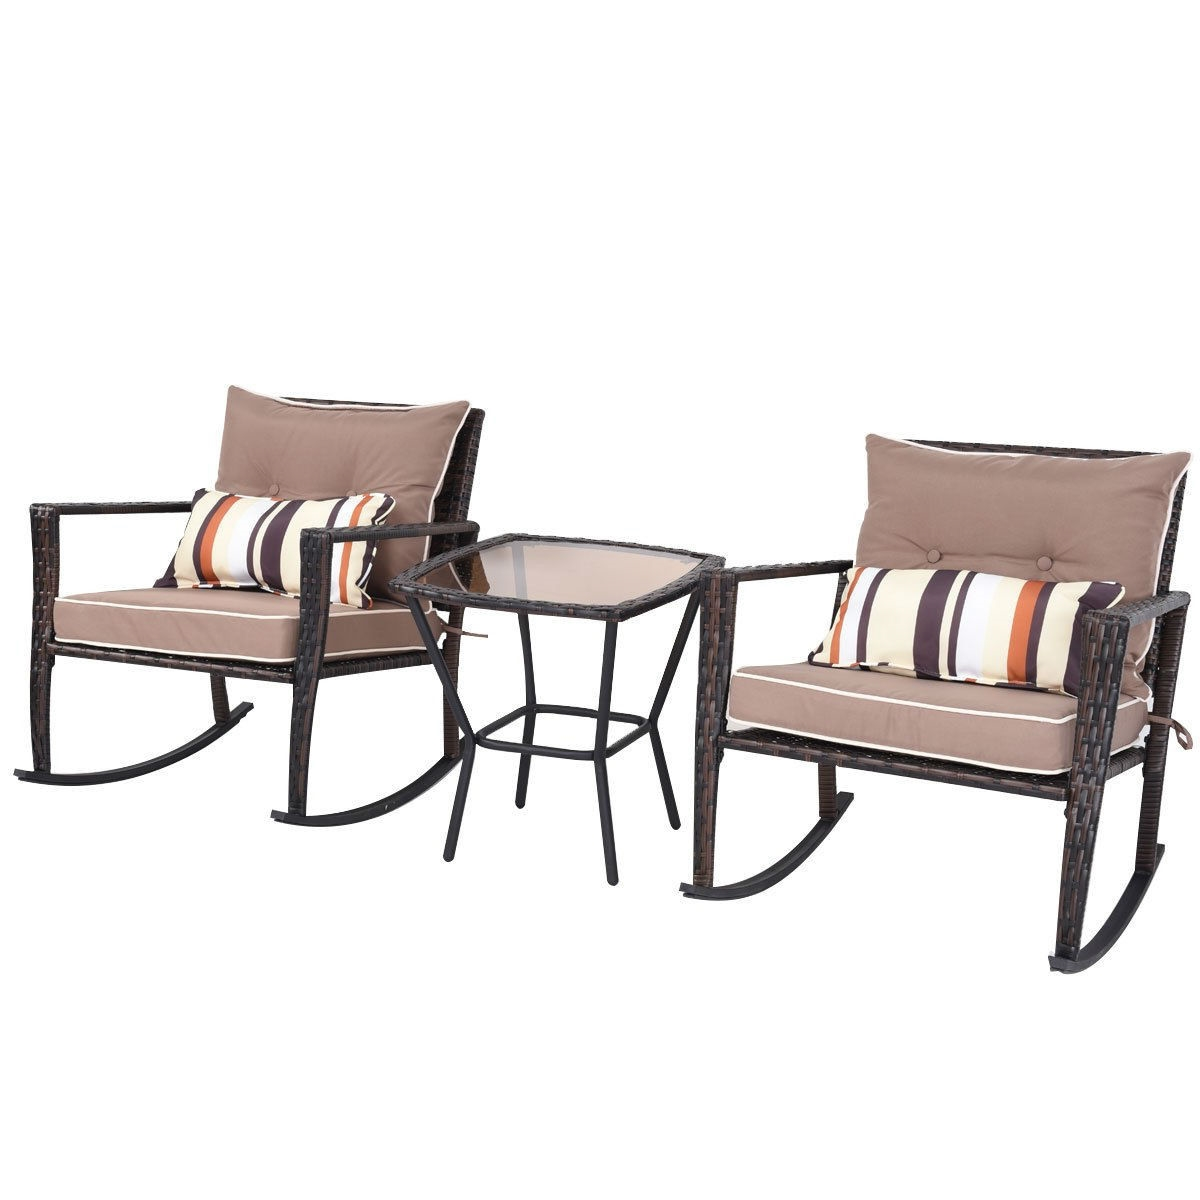 Brown 3 Piece Patio Set Rattan Wicker Rocking Chairs With Coffee Table Fastfurnishings